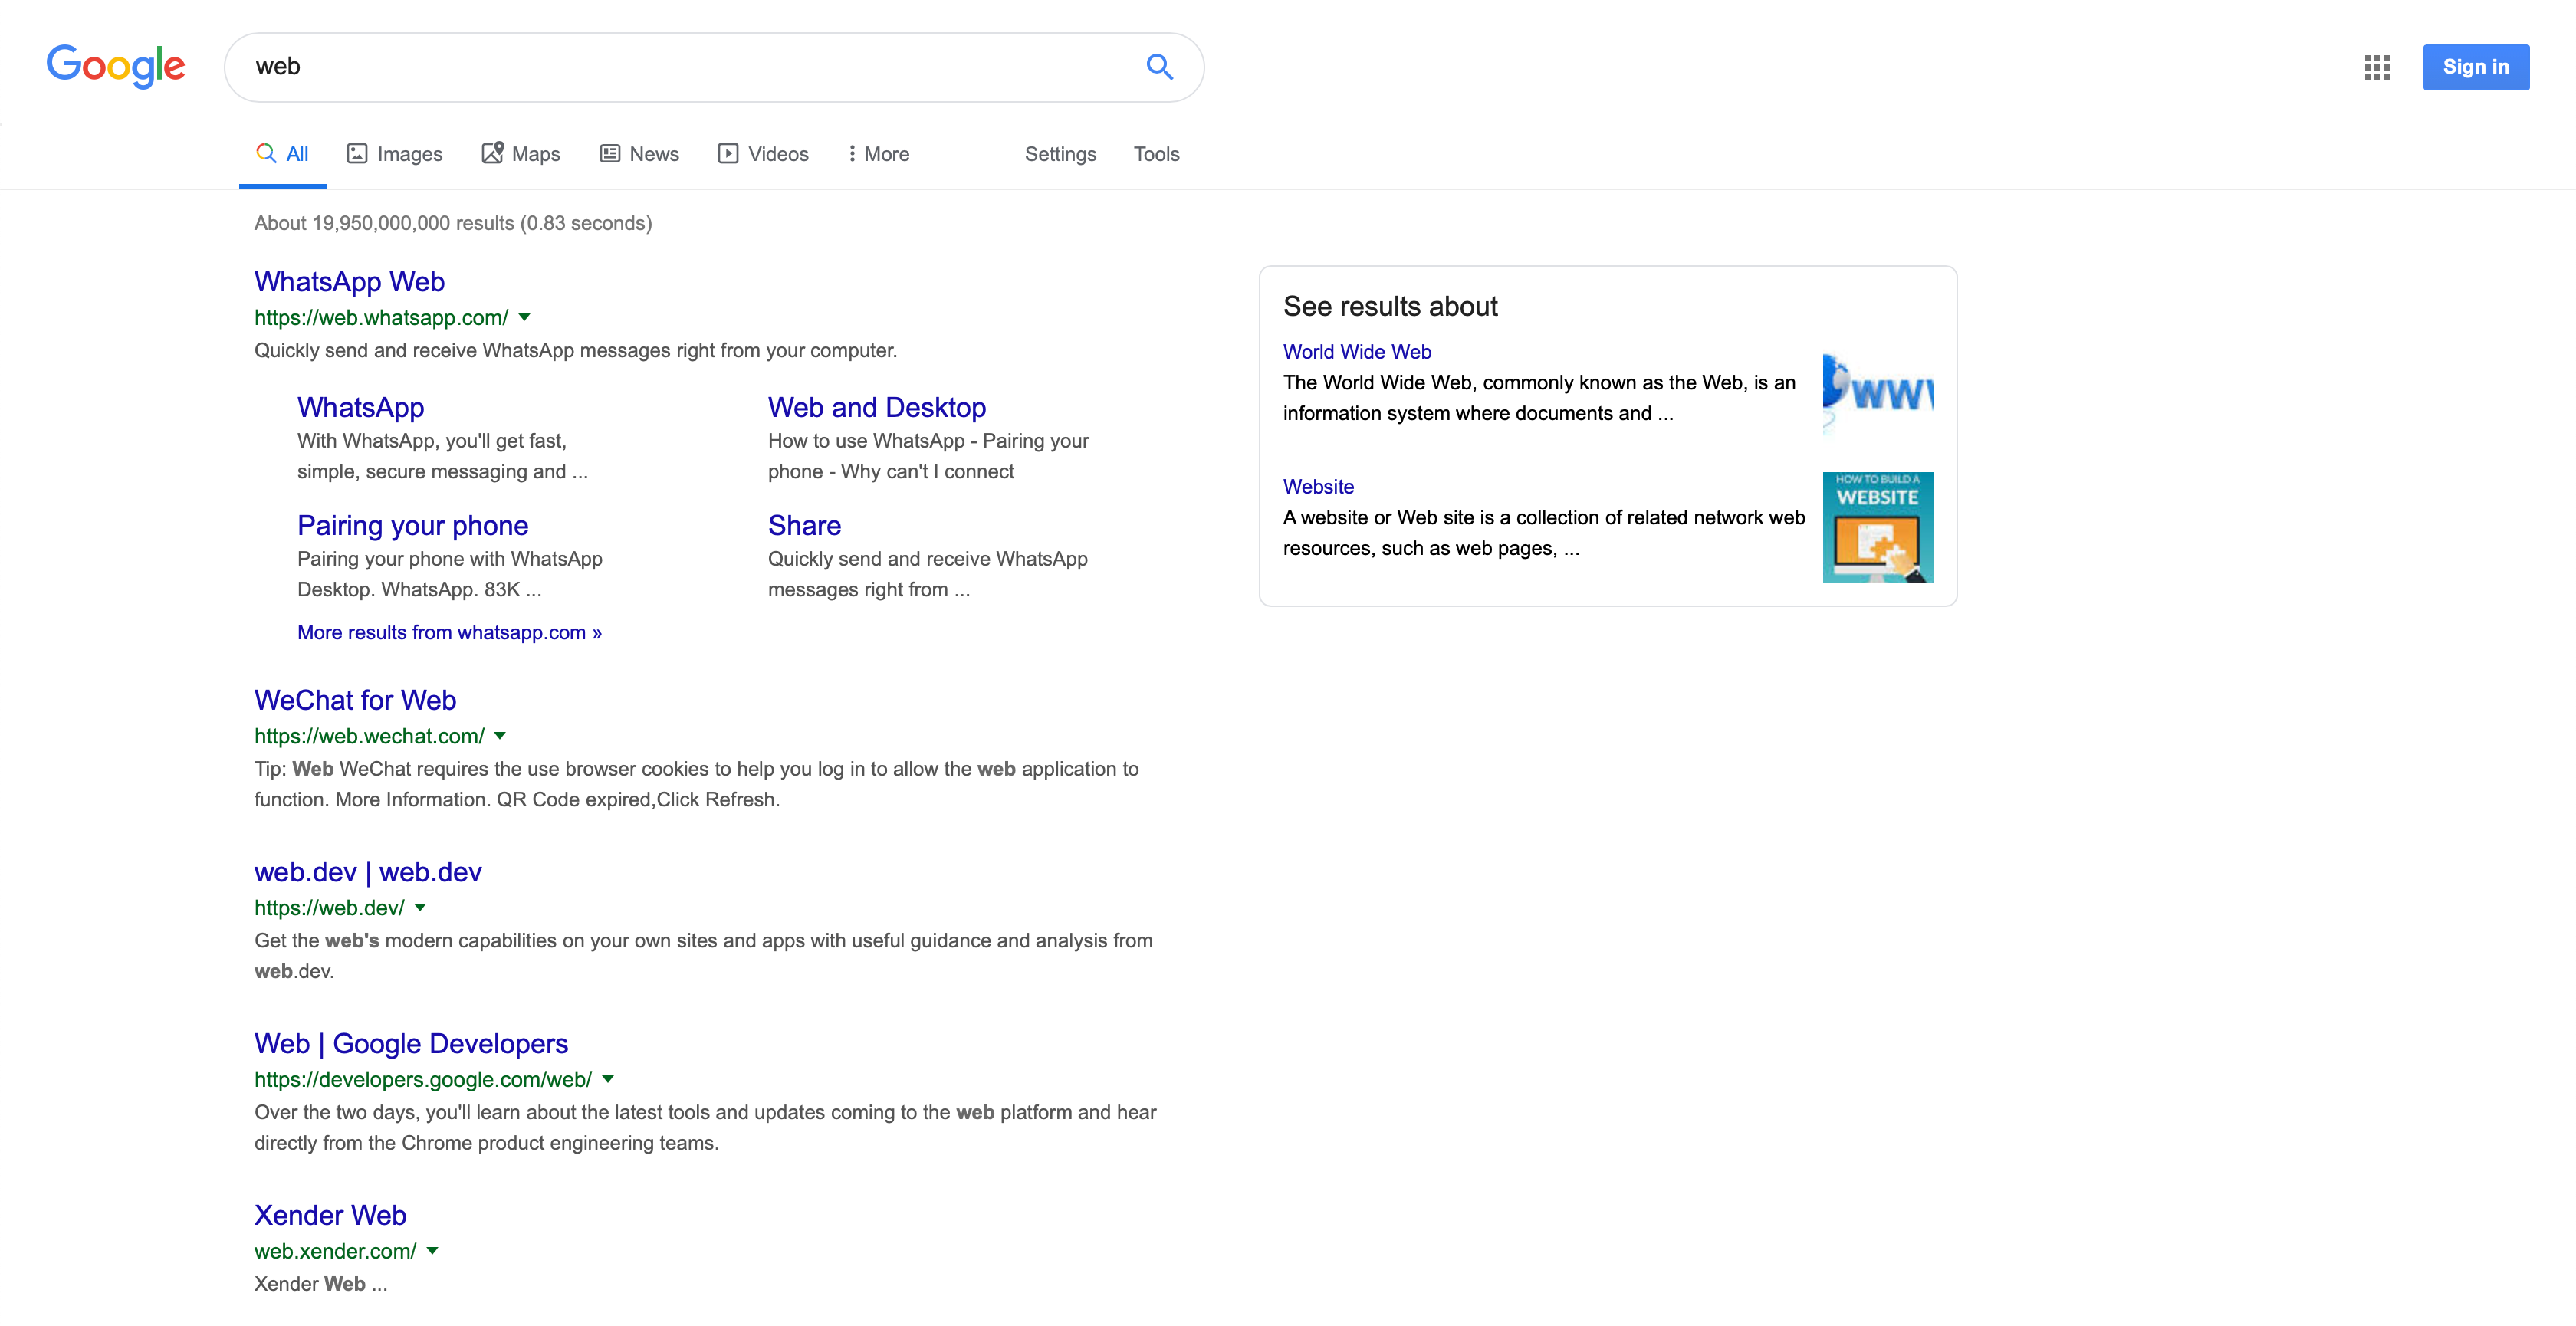 Google Desktop new UI with icons under search